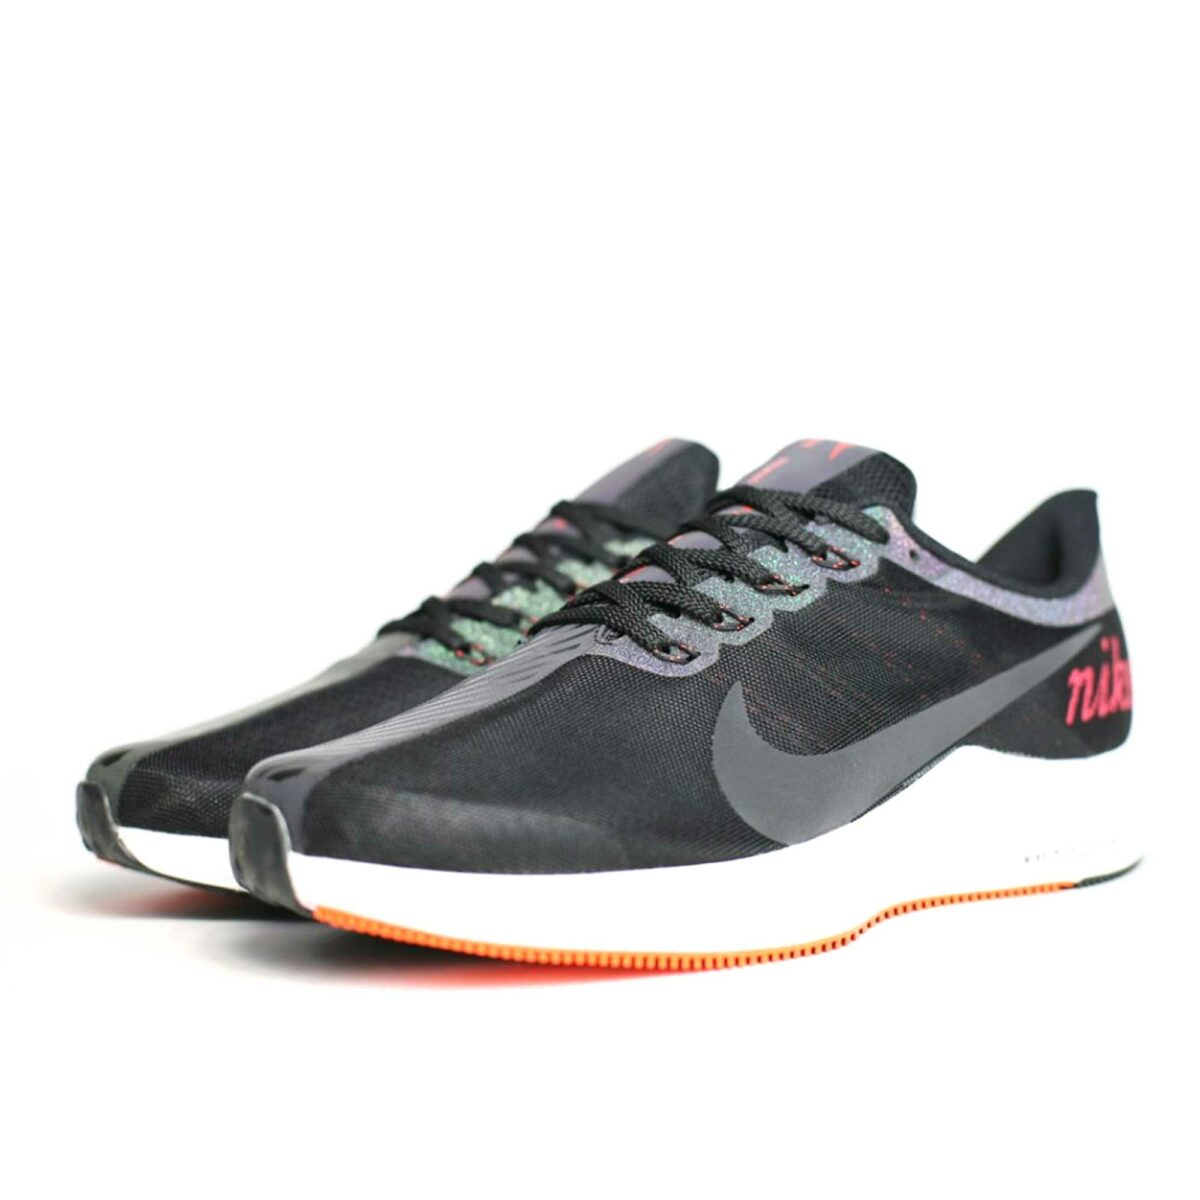 nike zoom pegasus 35 turbo black orange white aj4114_004 купить